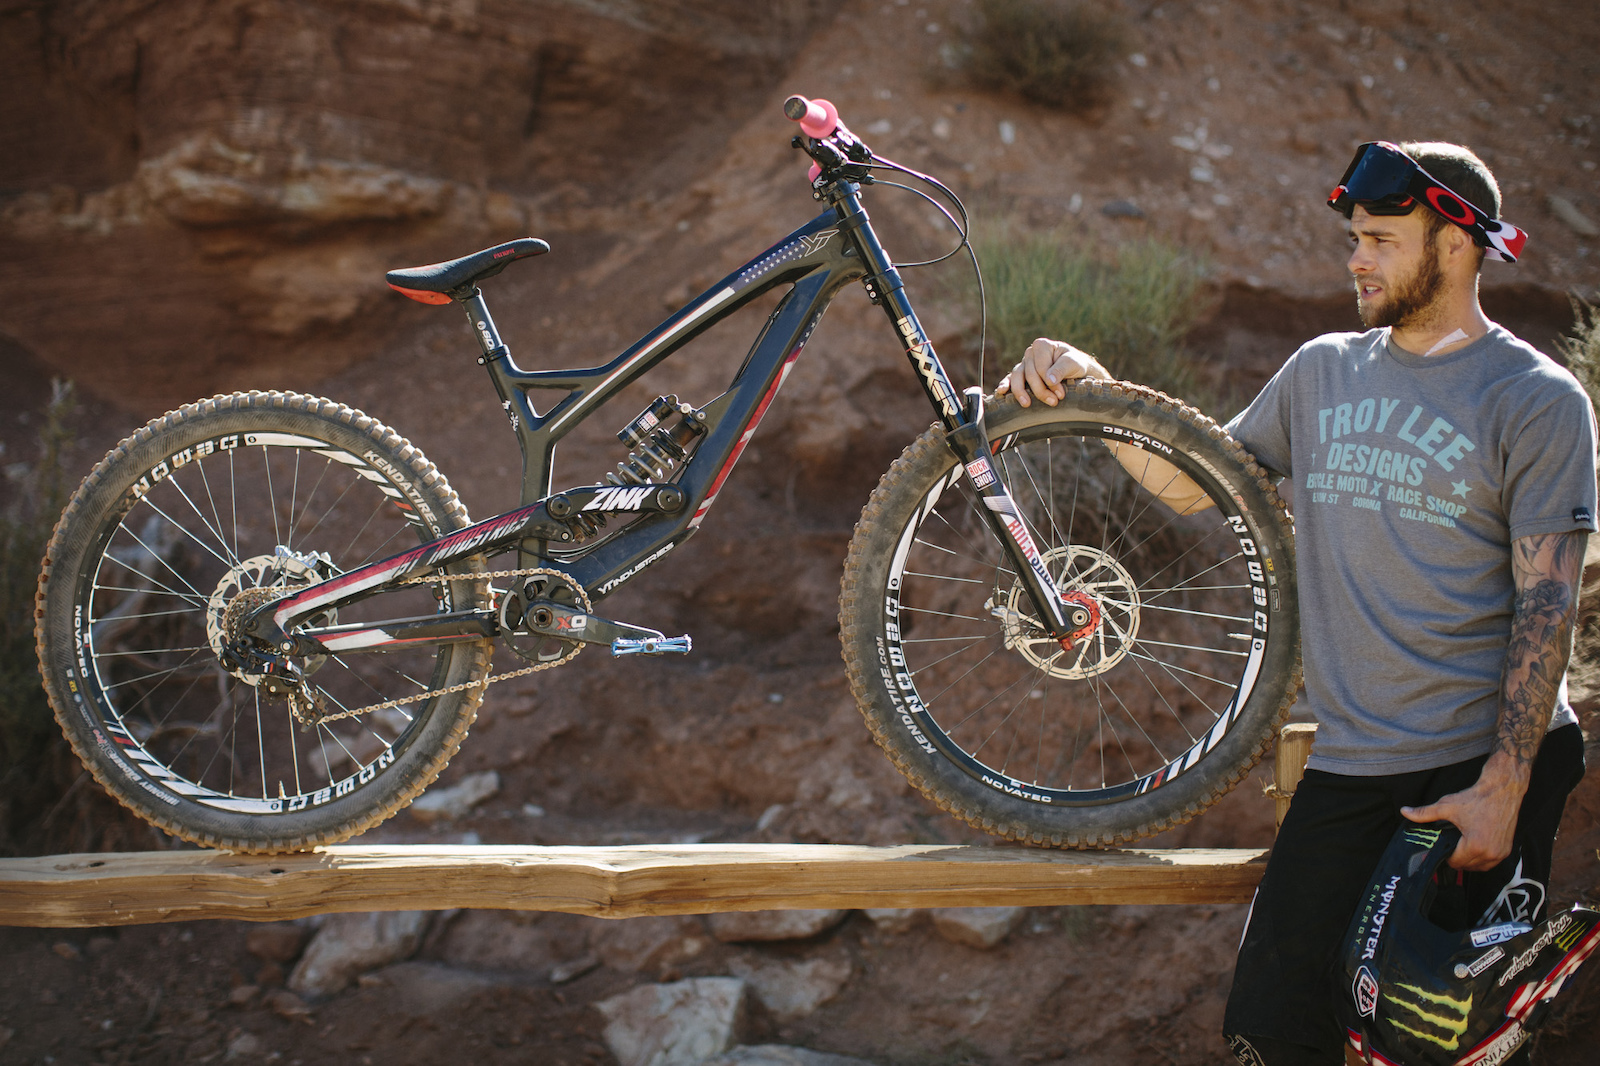 Cam Zink at RedBull Rampage 2015 Virgin Utah USA